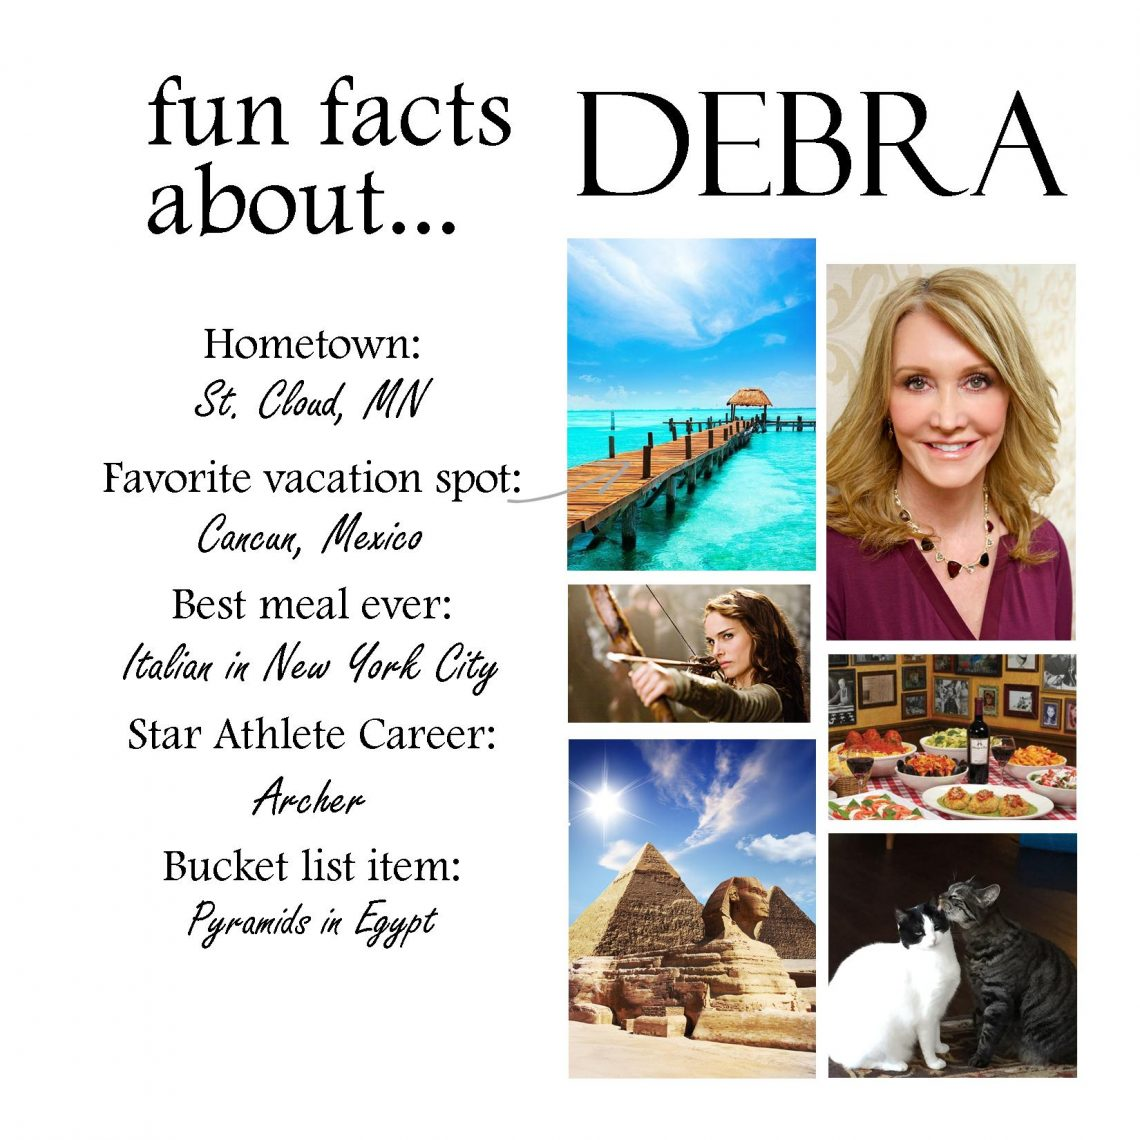 debra-fun-factjpg